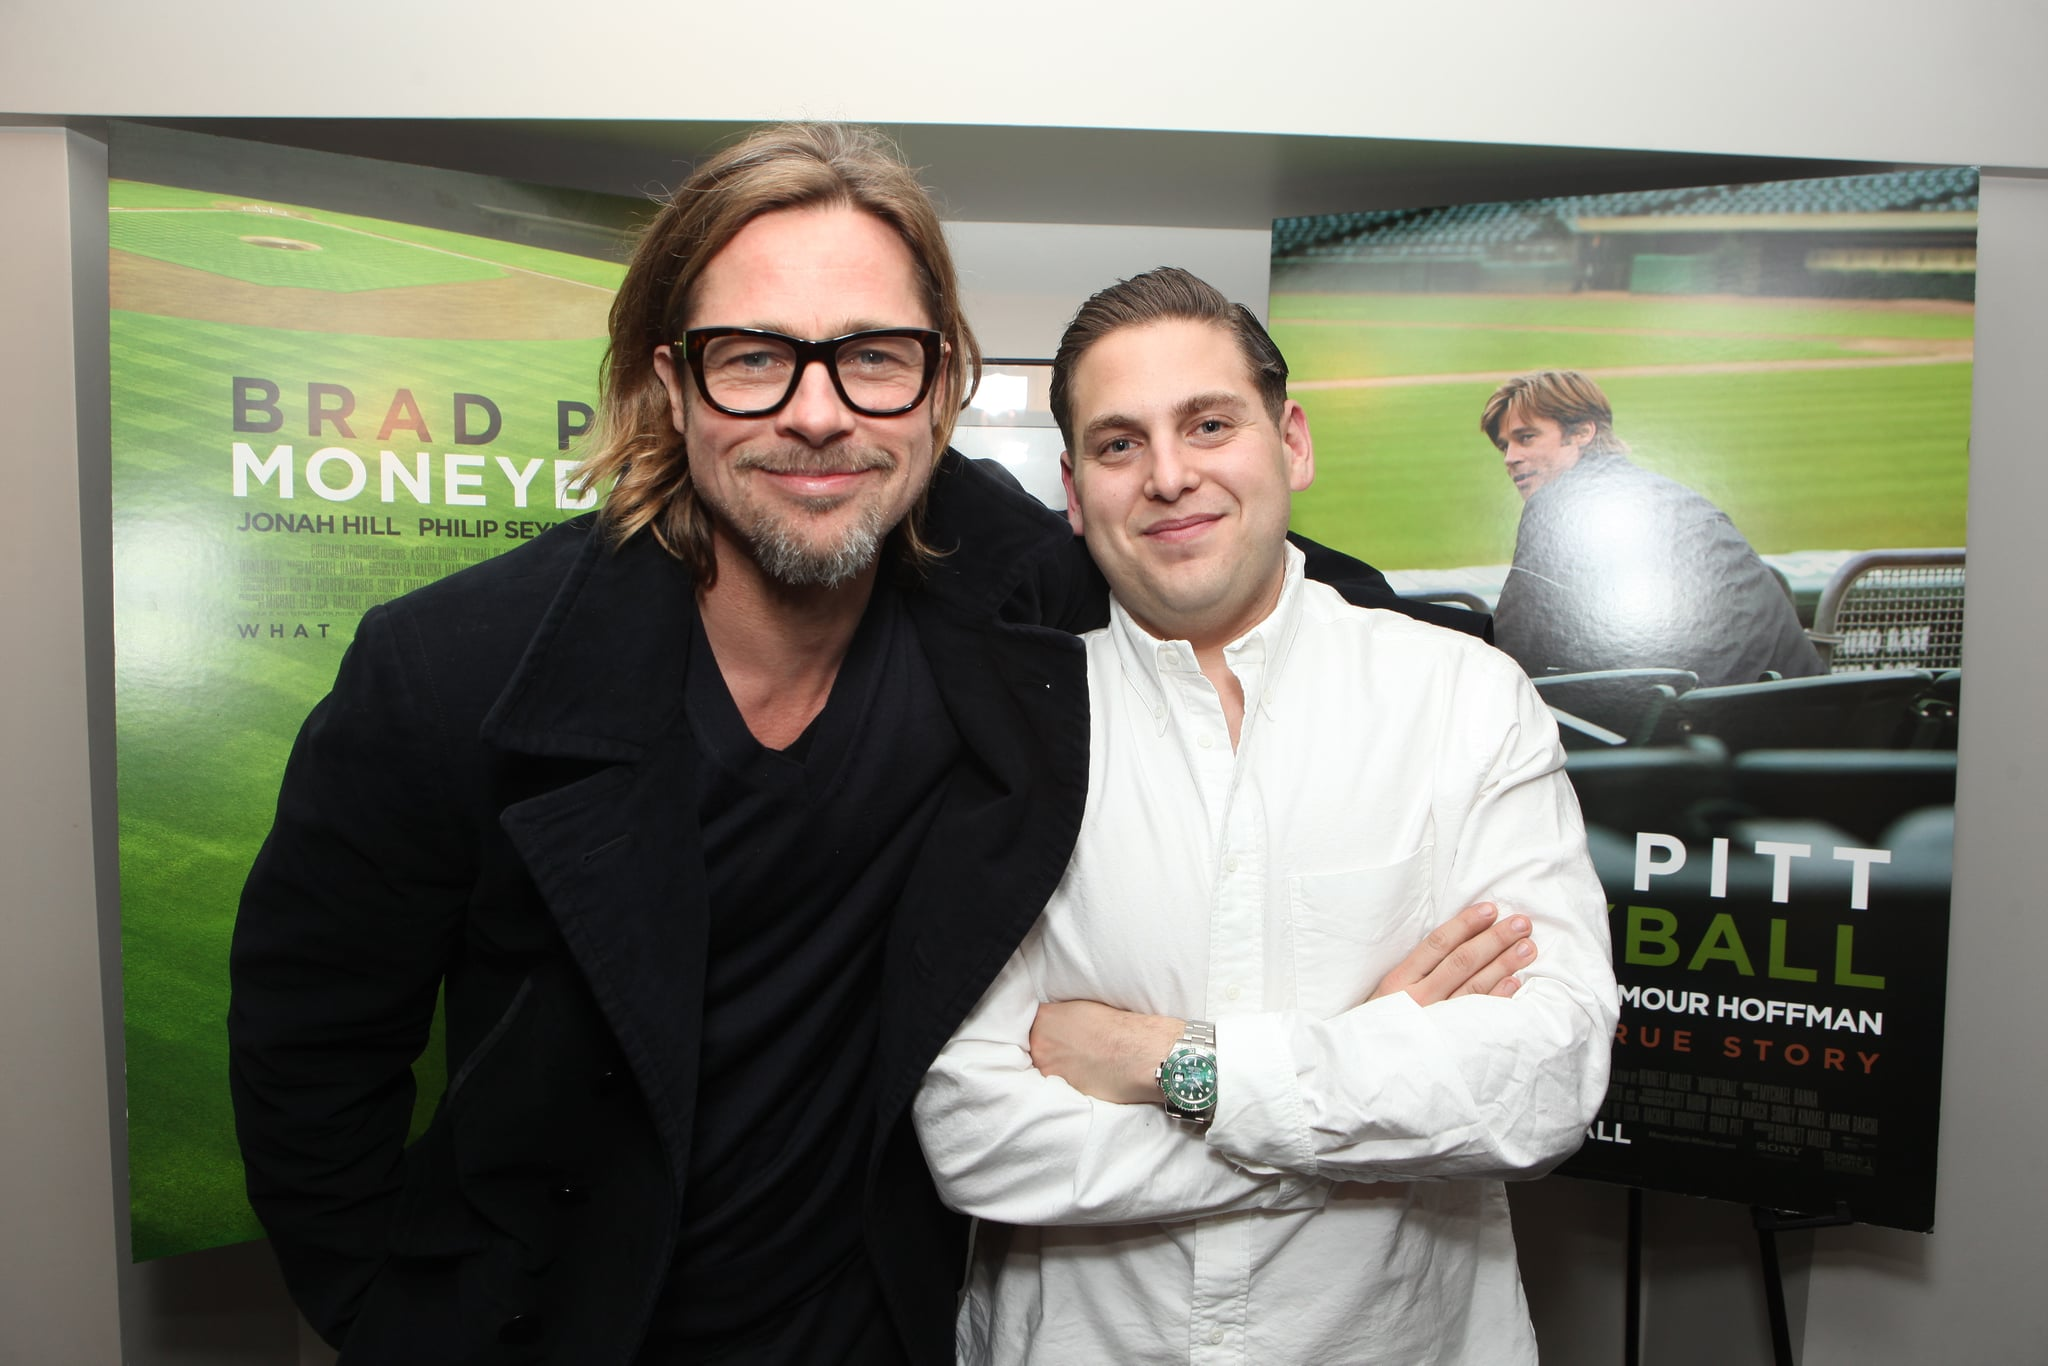 Brad Pitt and Jonah Hill were playful at Sony Pictures Studios.